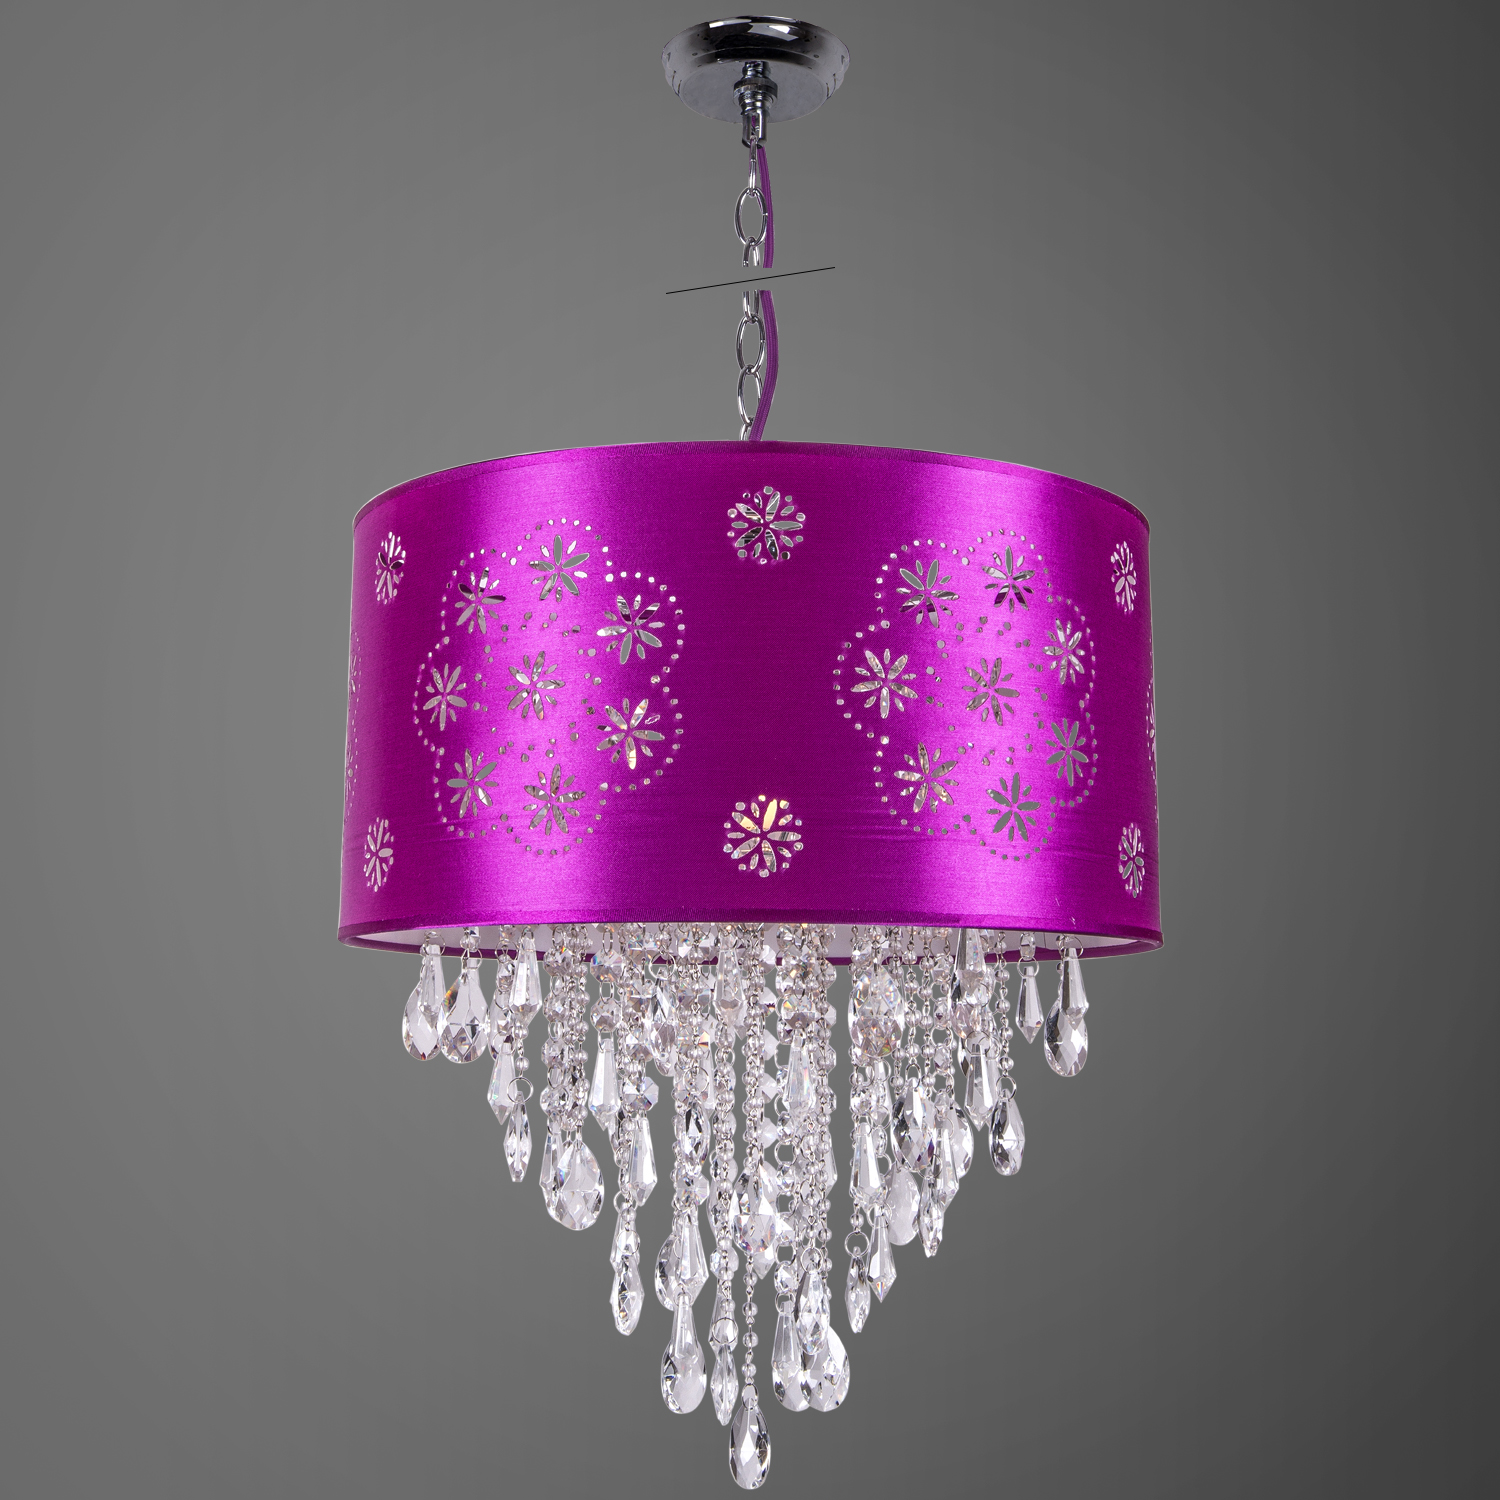 Pendant light with shade and crystals : Light crystal pendant in chrome finish with purple